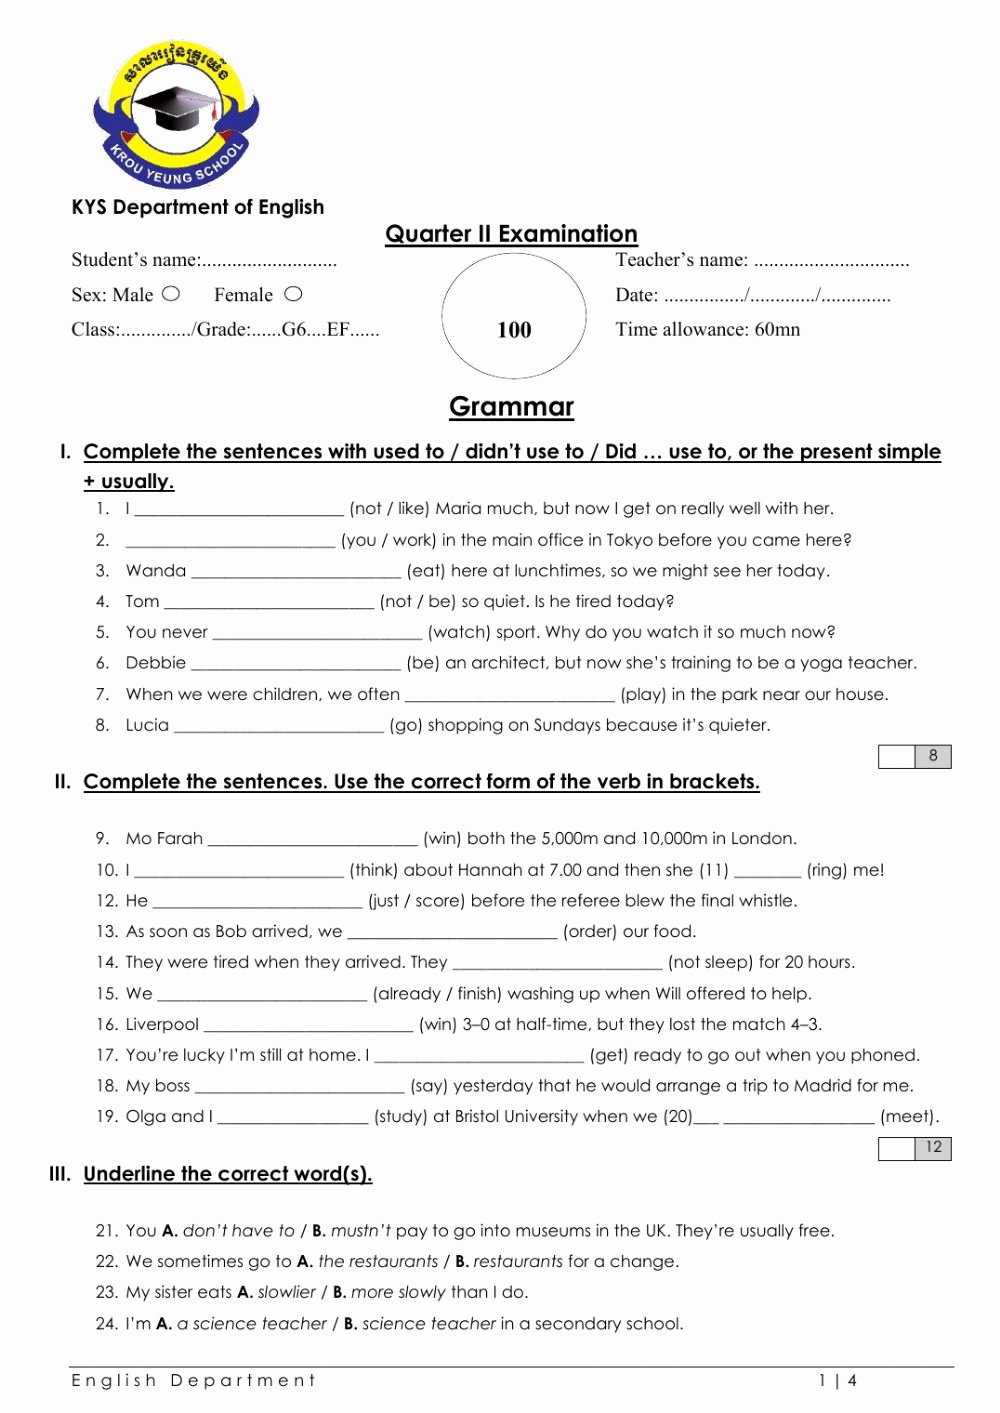 Grammar Worksheets for Grade 6 New Grade 6 English File Grammar Test Interactive Worksheet